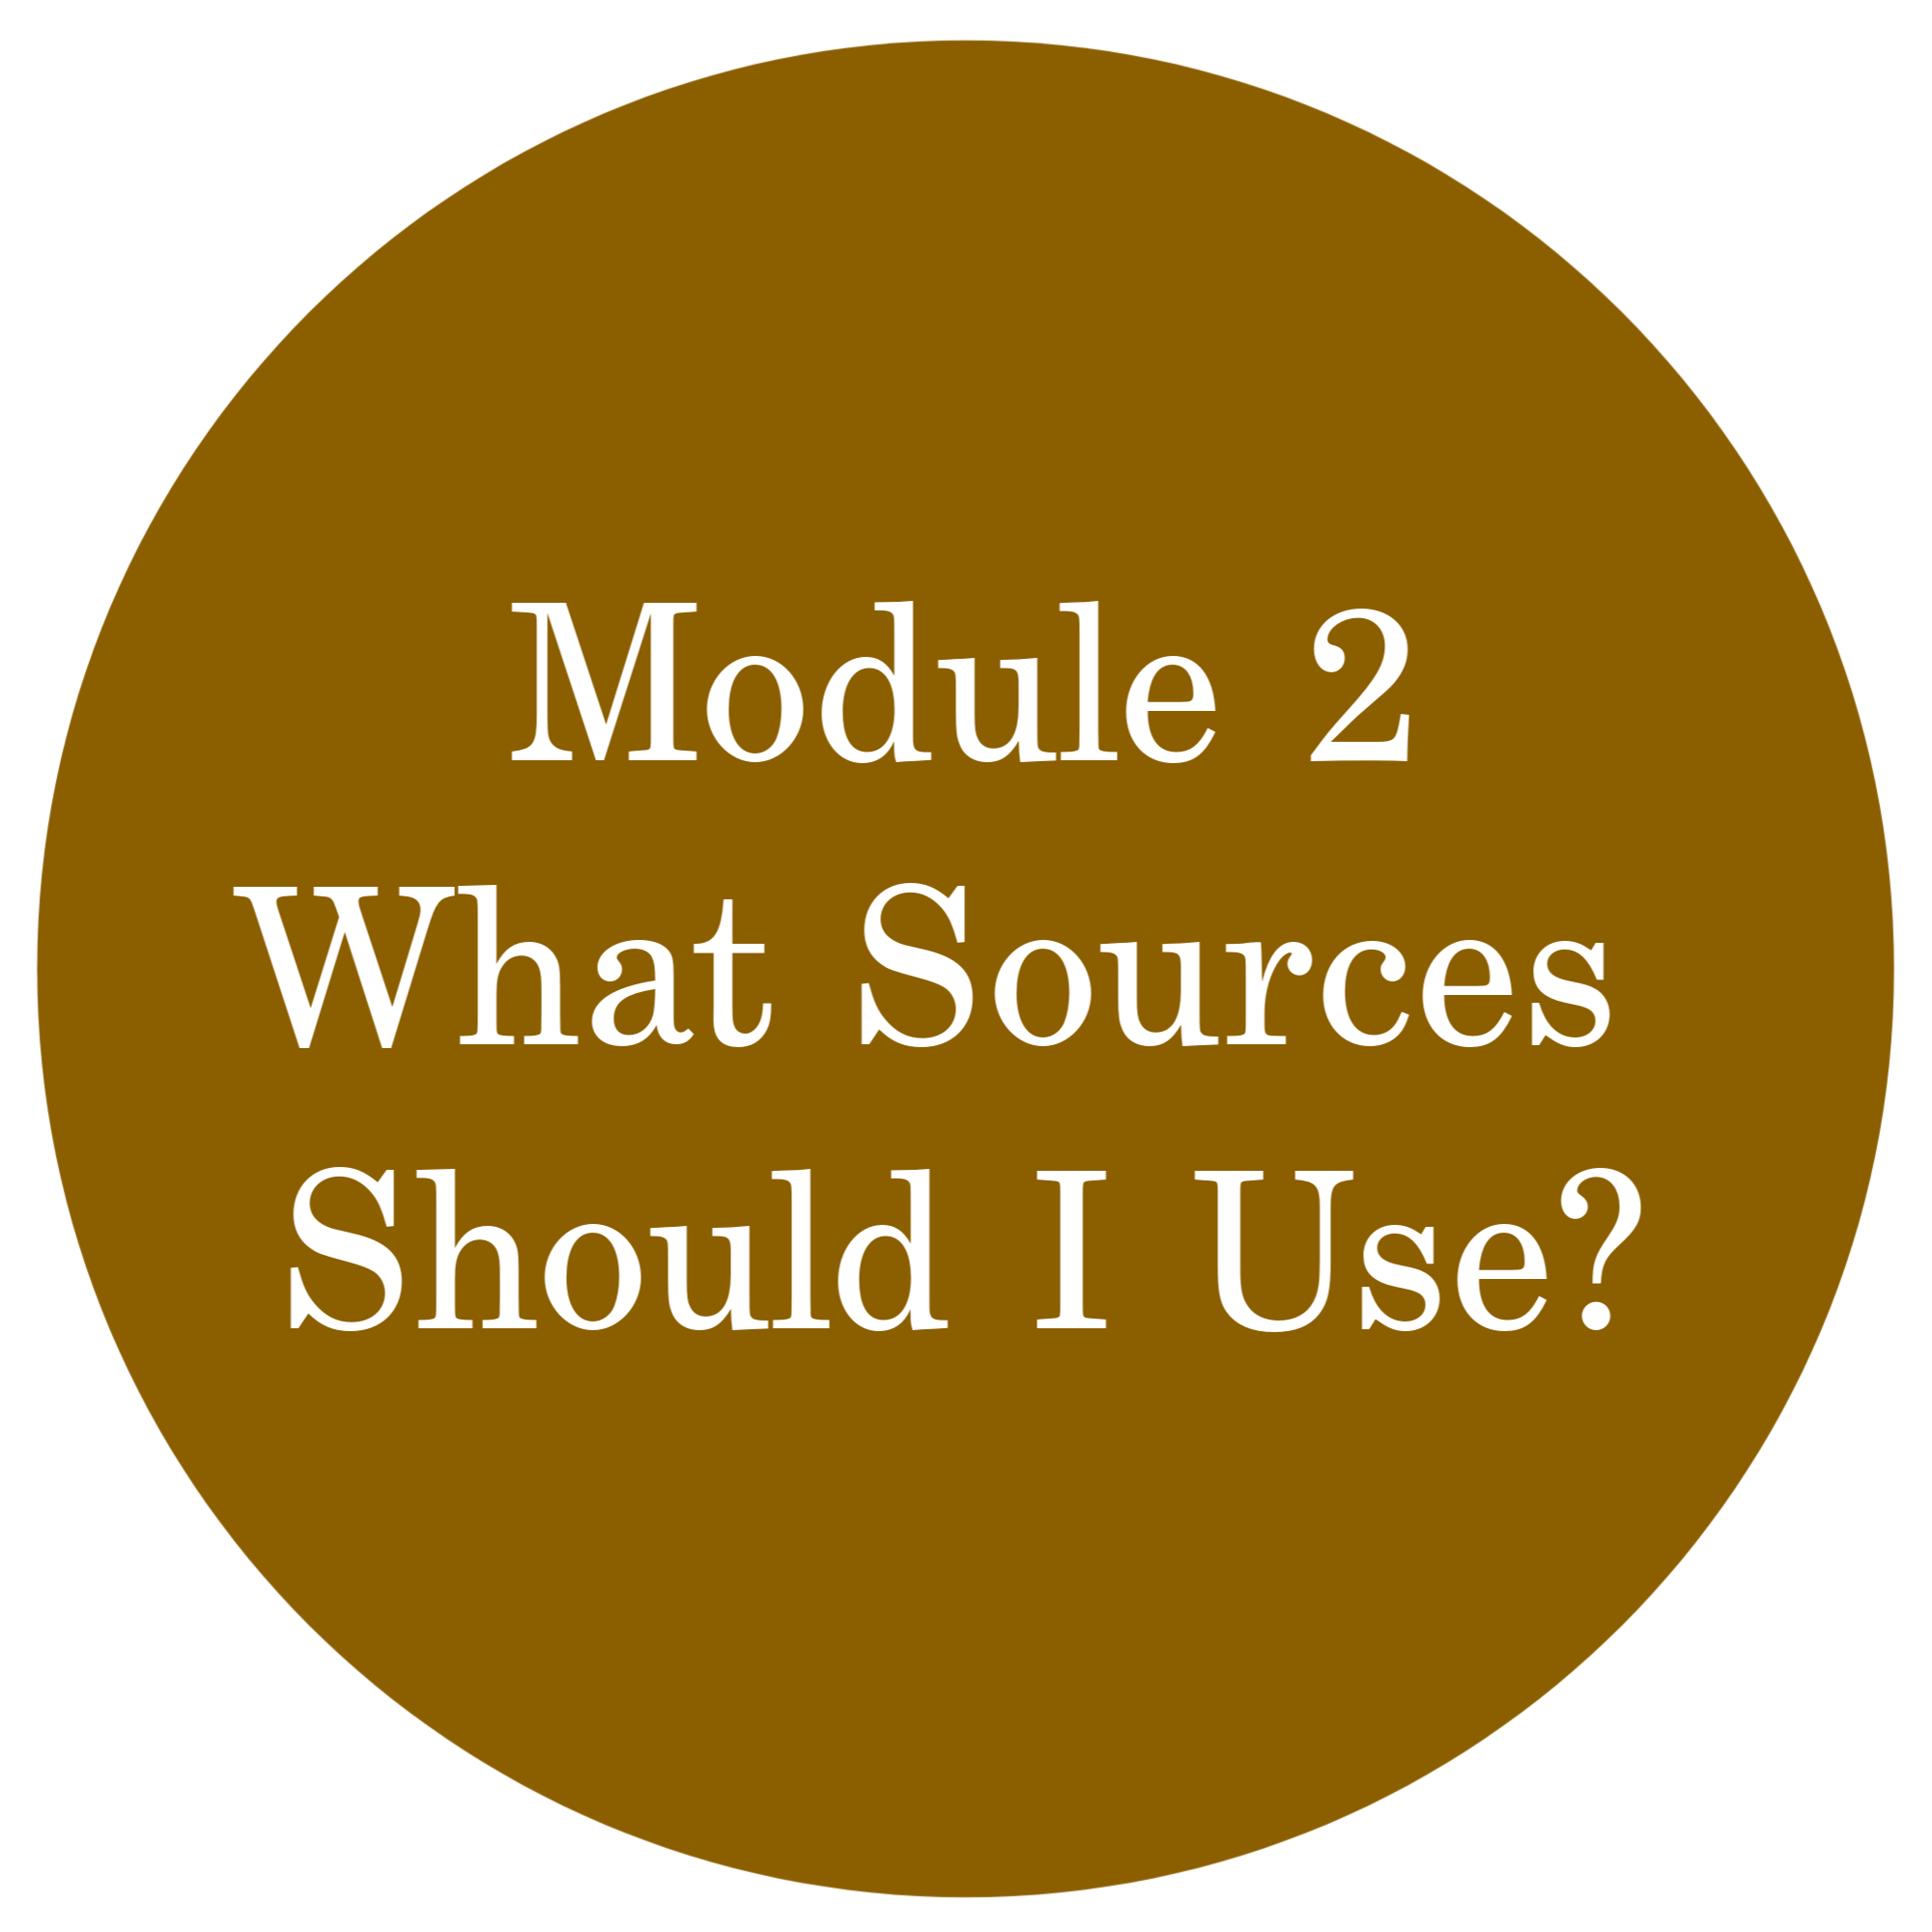 Module 2 What Sources Should I Use?